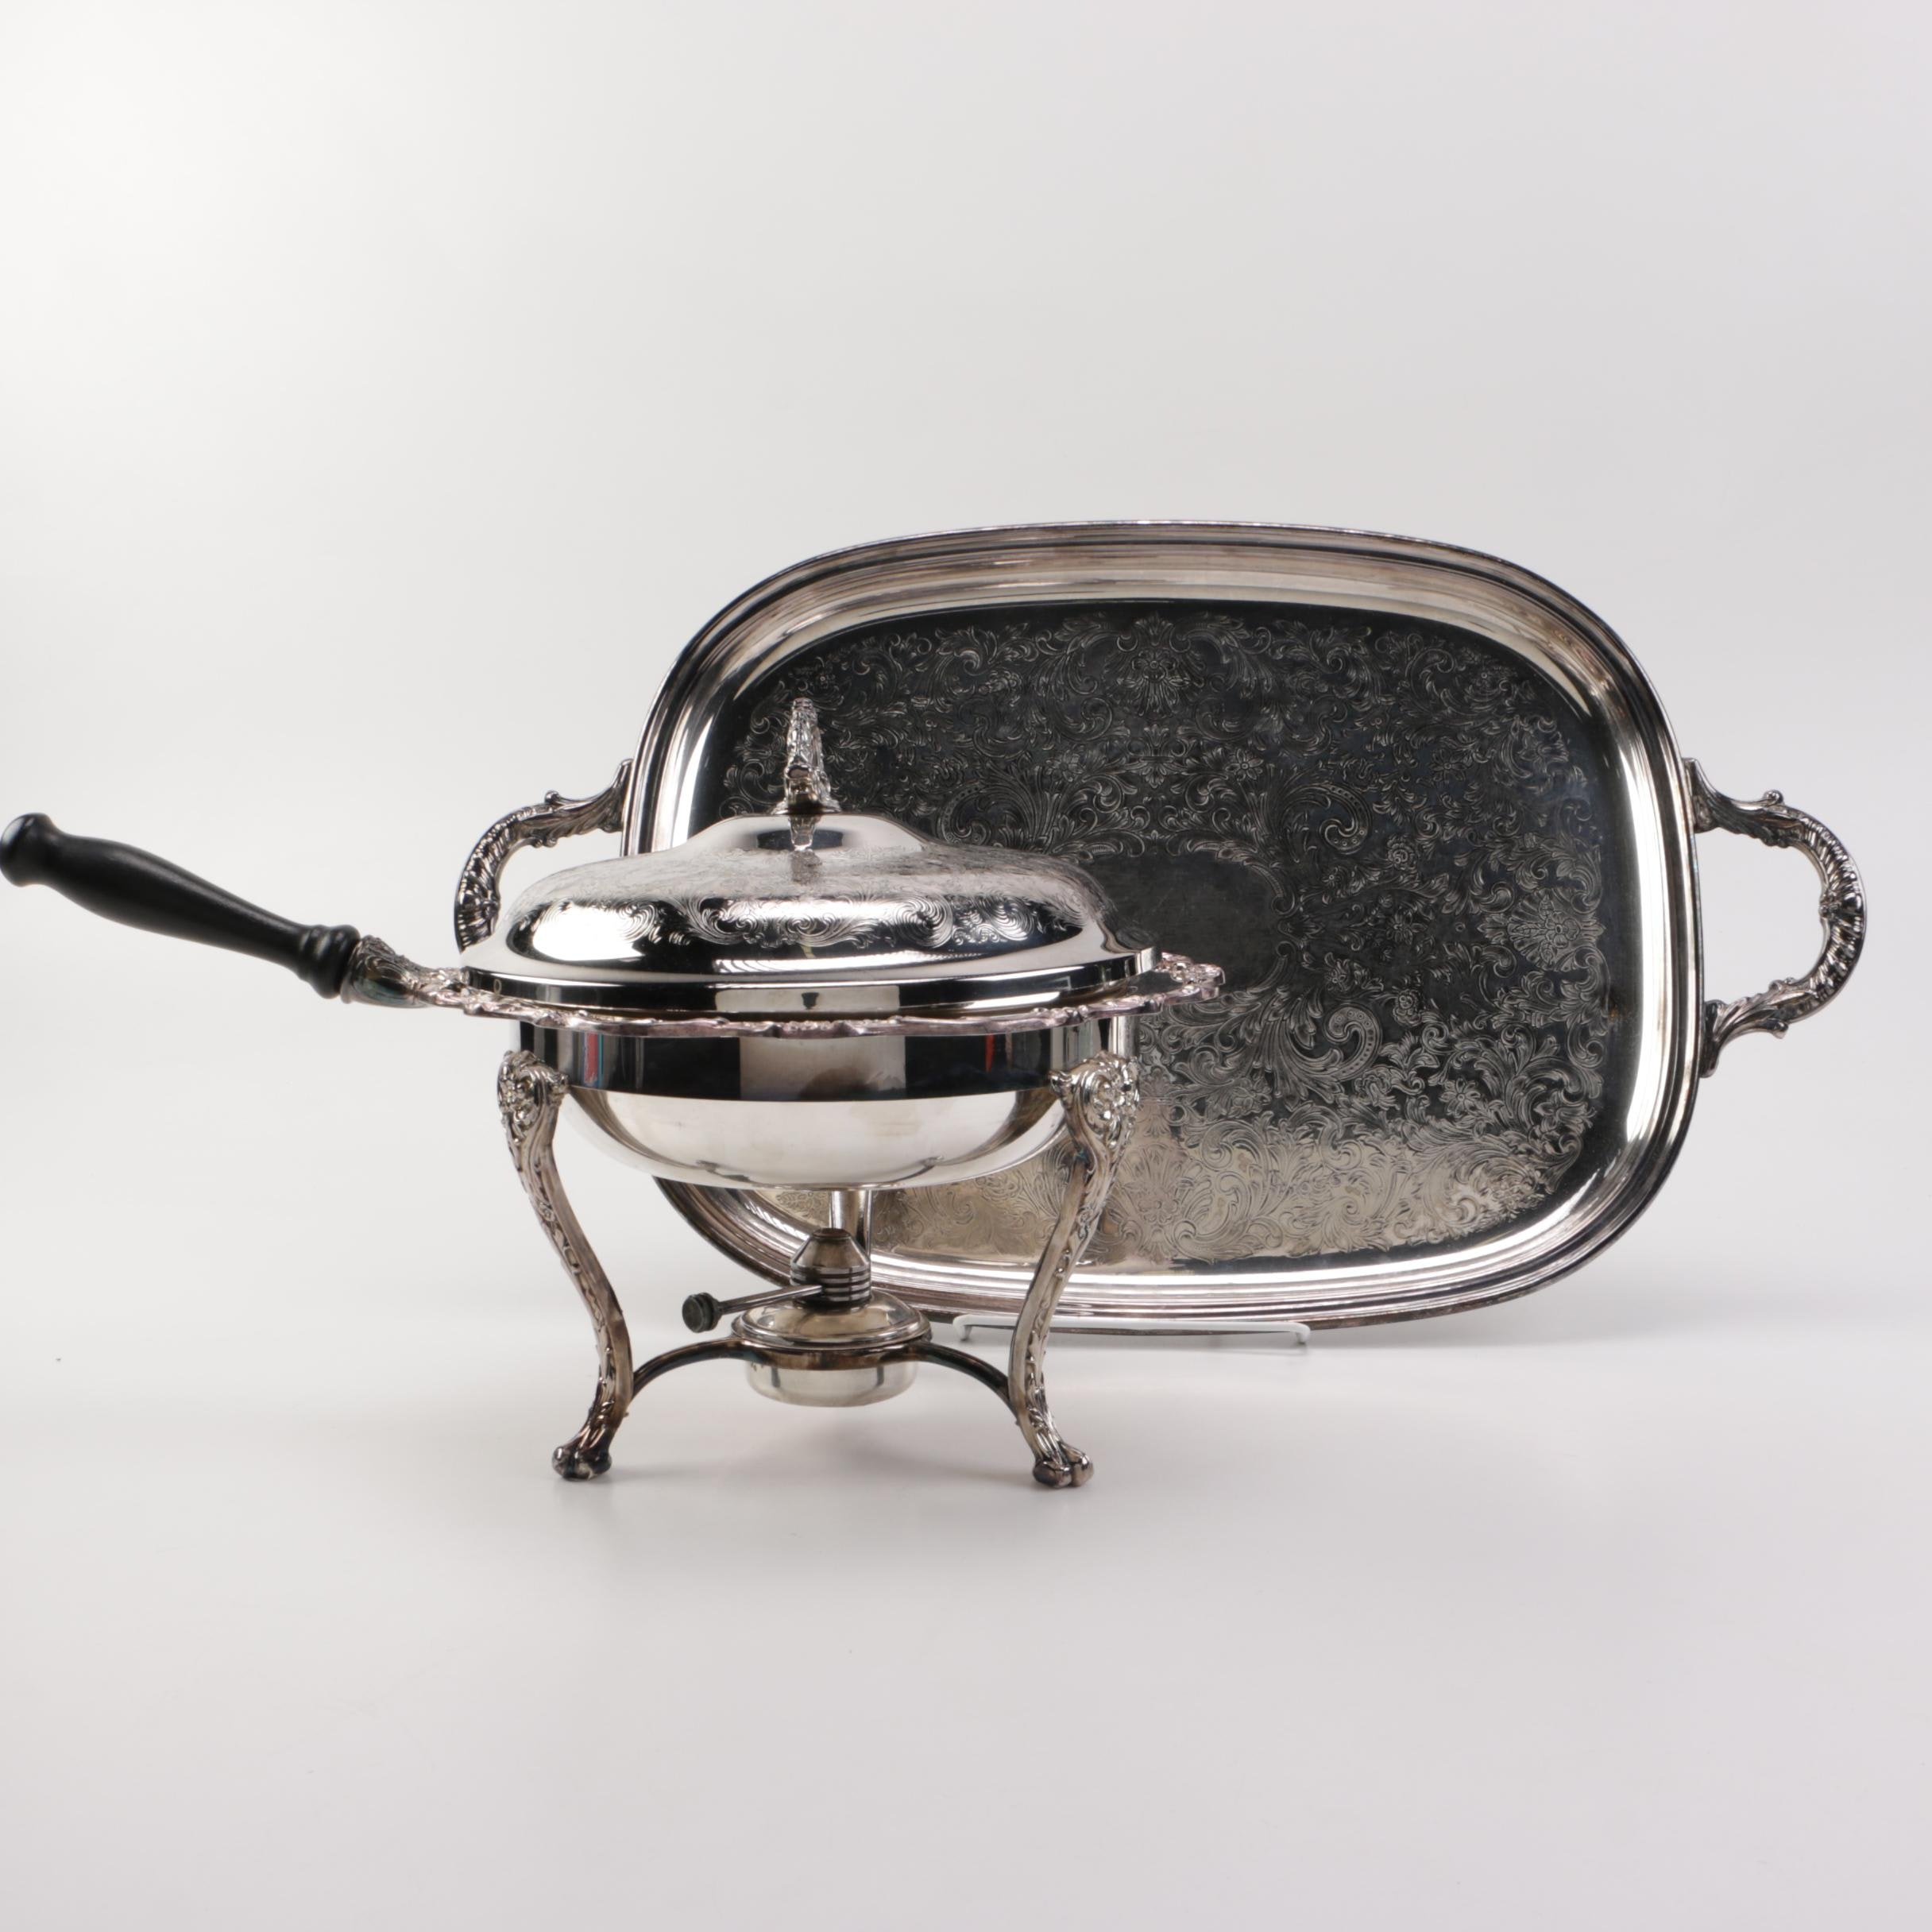 Silver Plated Chafing Dish with Tray